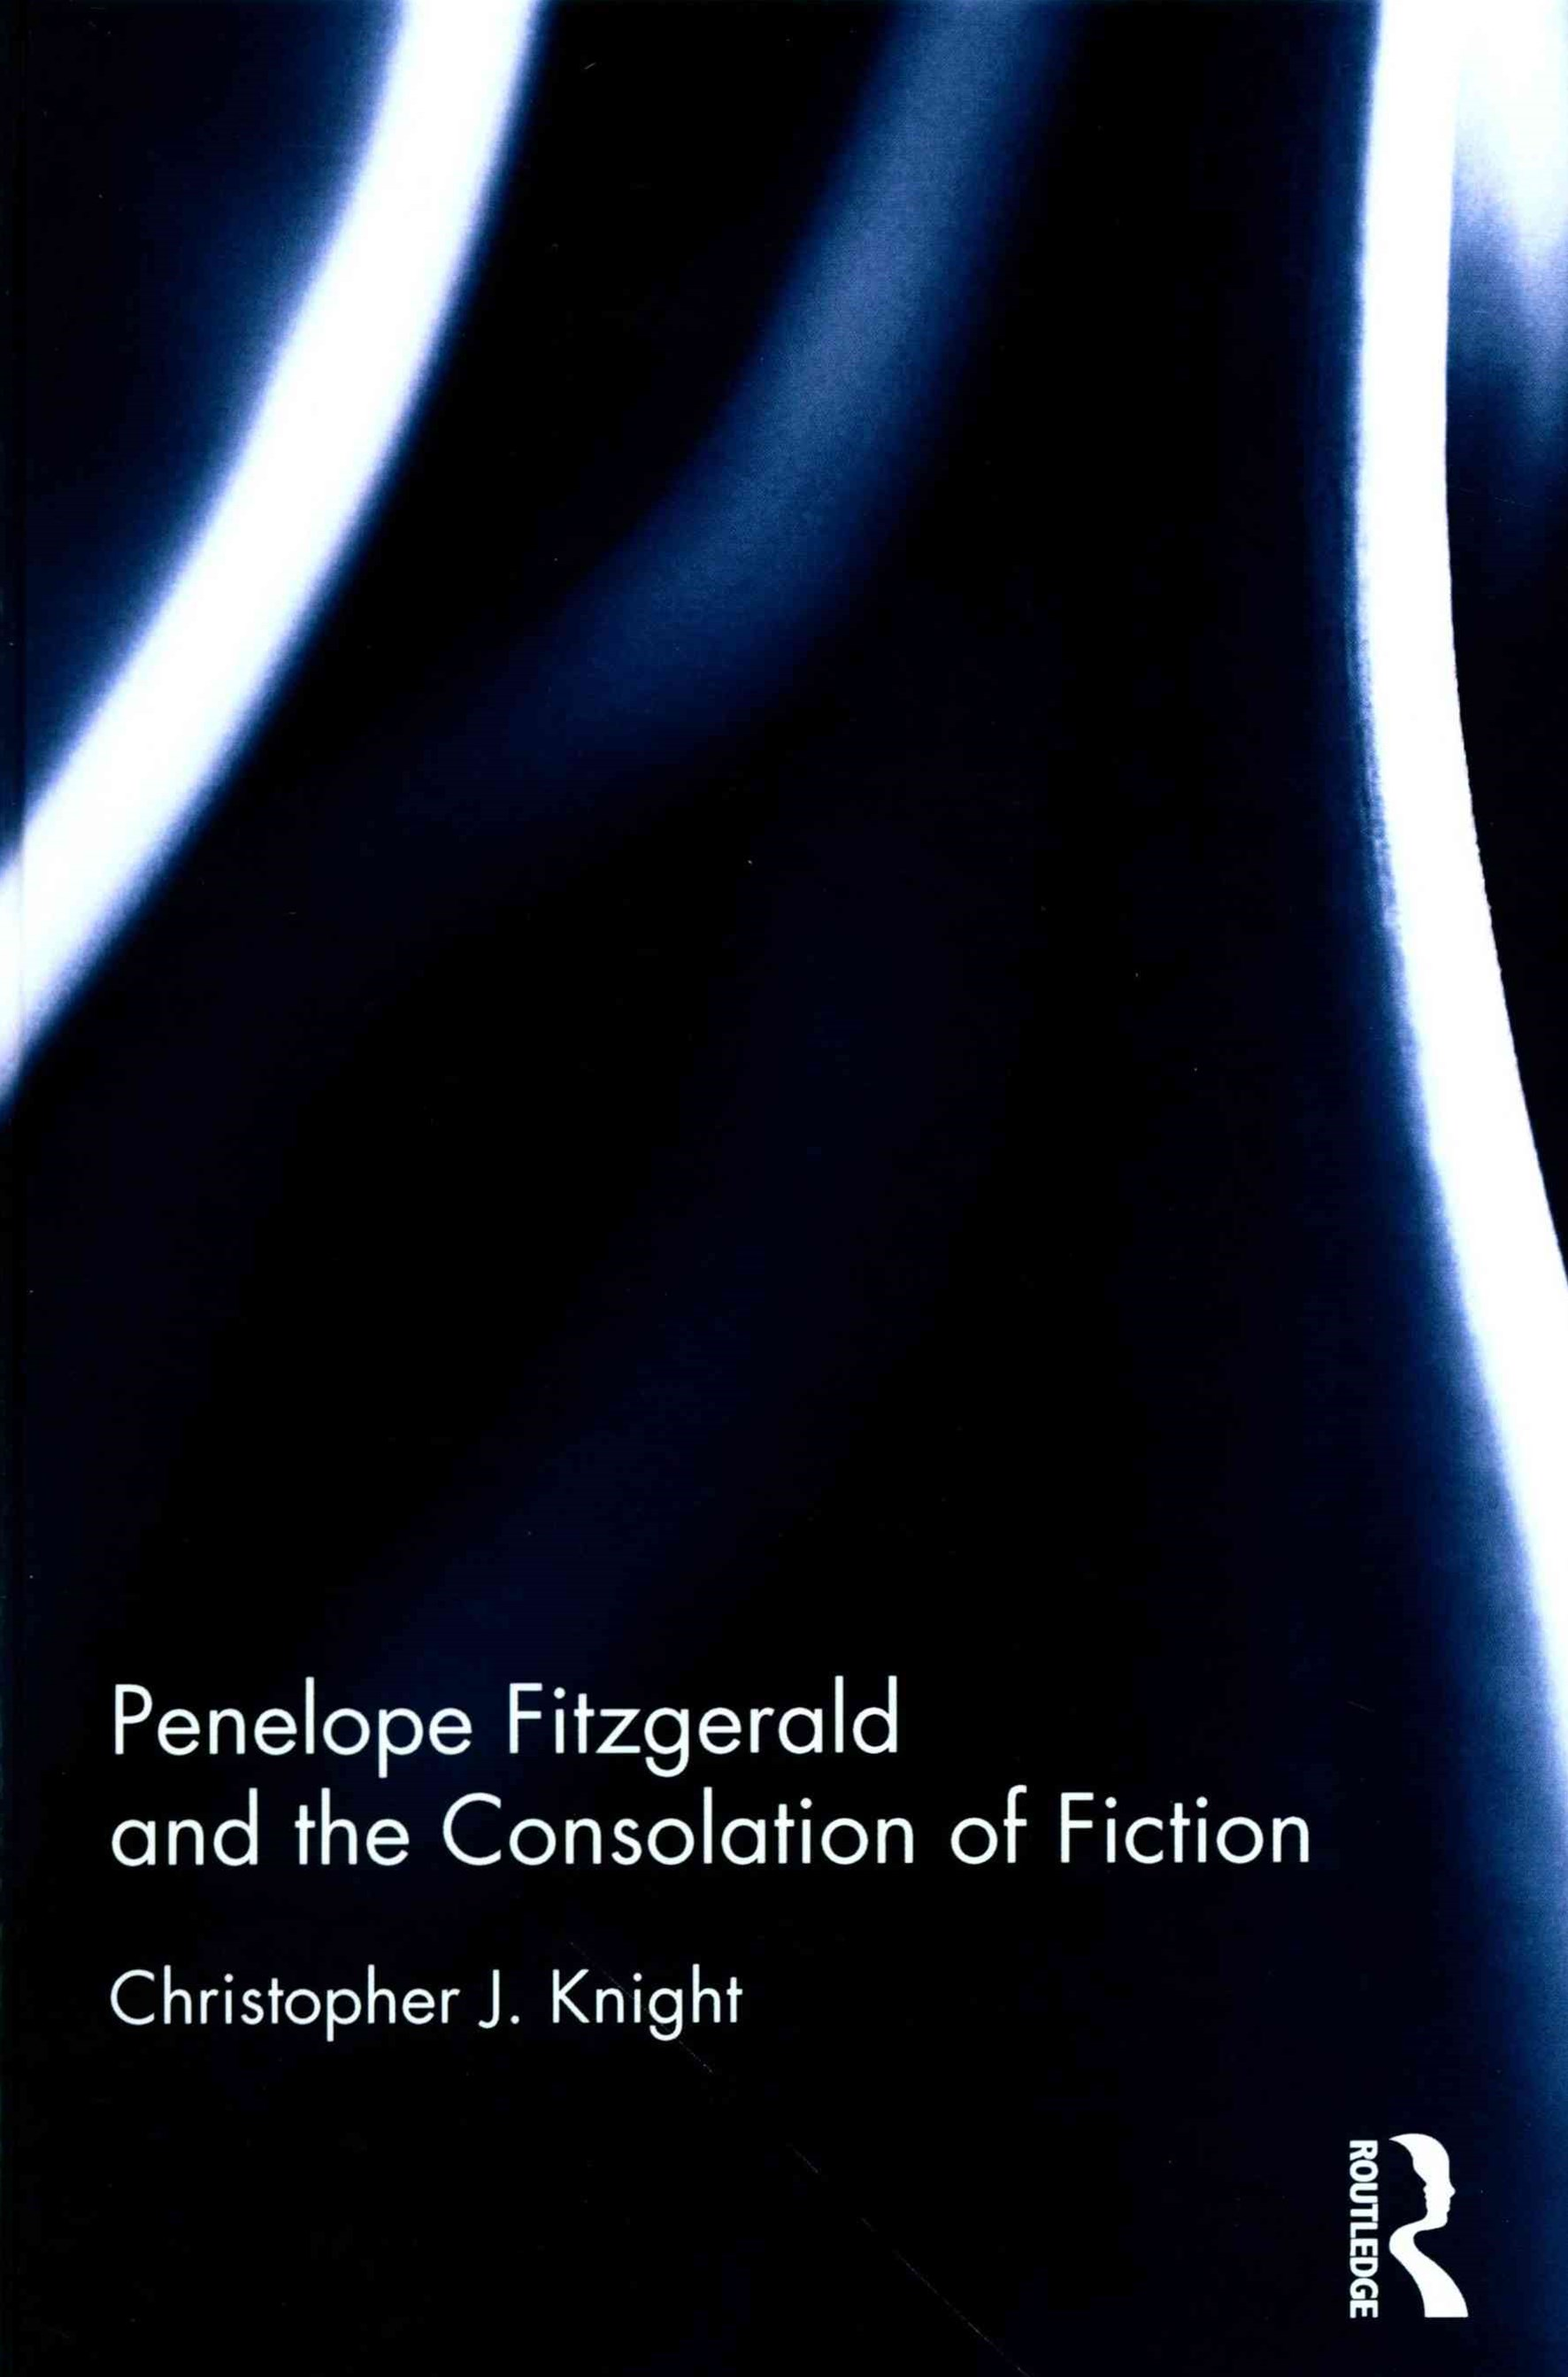 Penelope Fitzgerald and the Consolation of Fiction